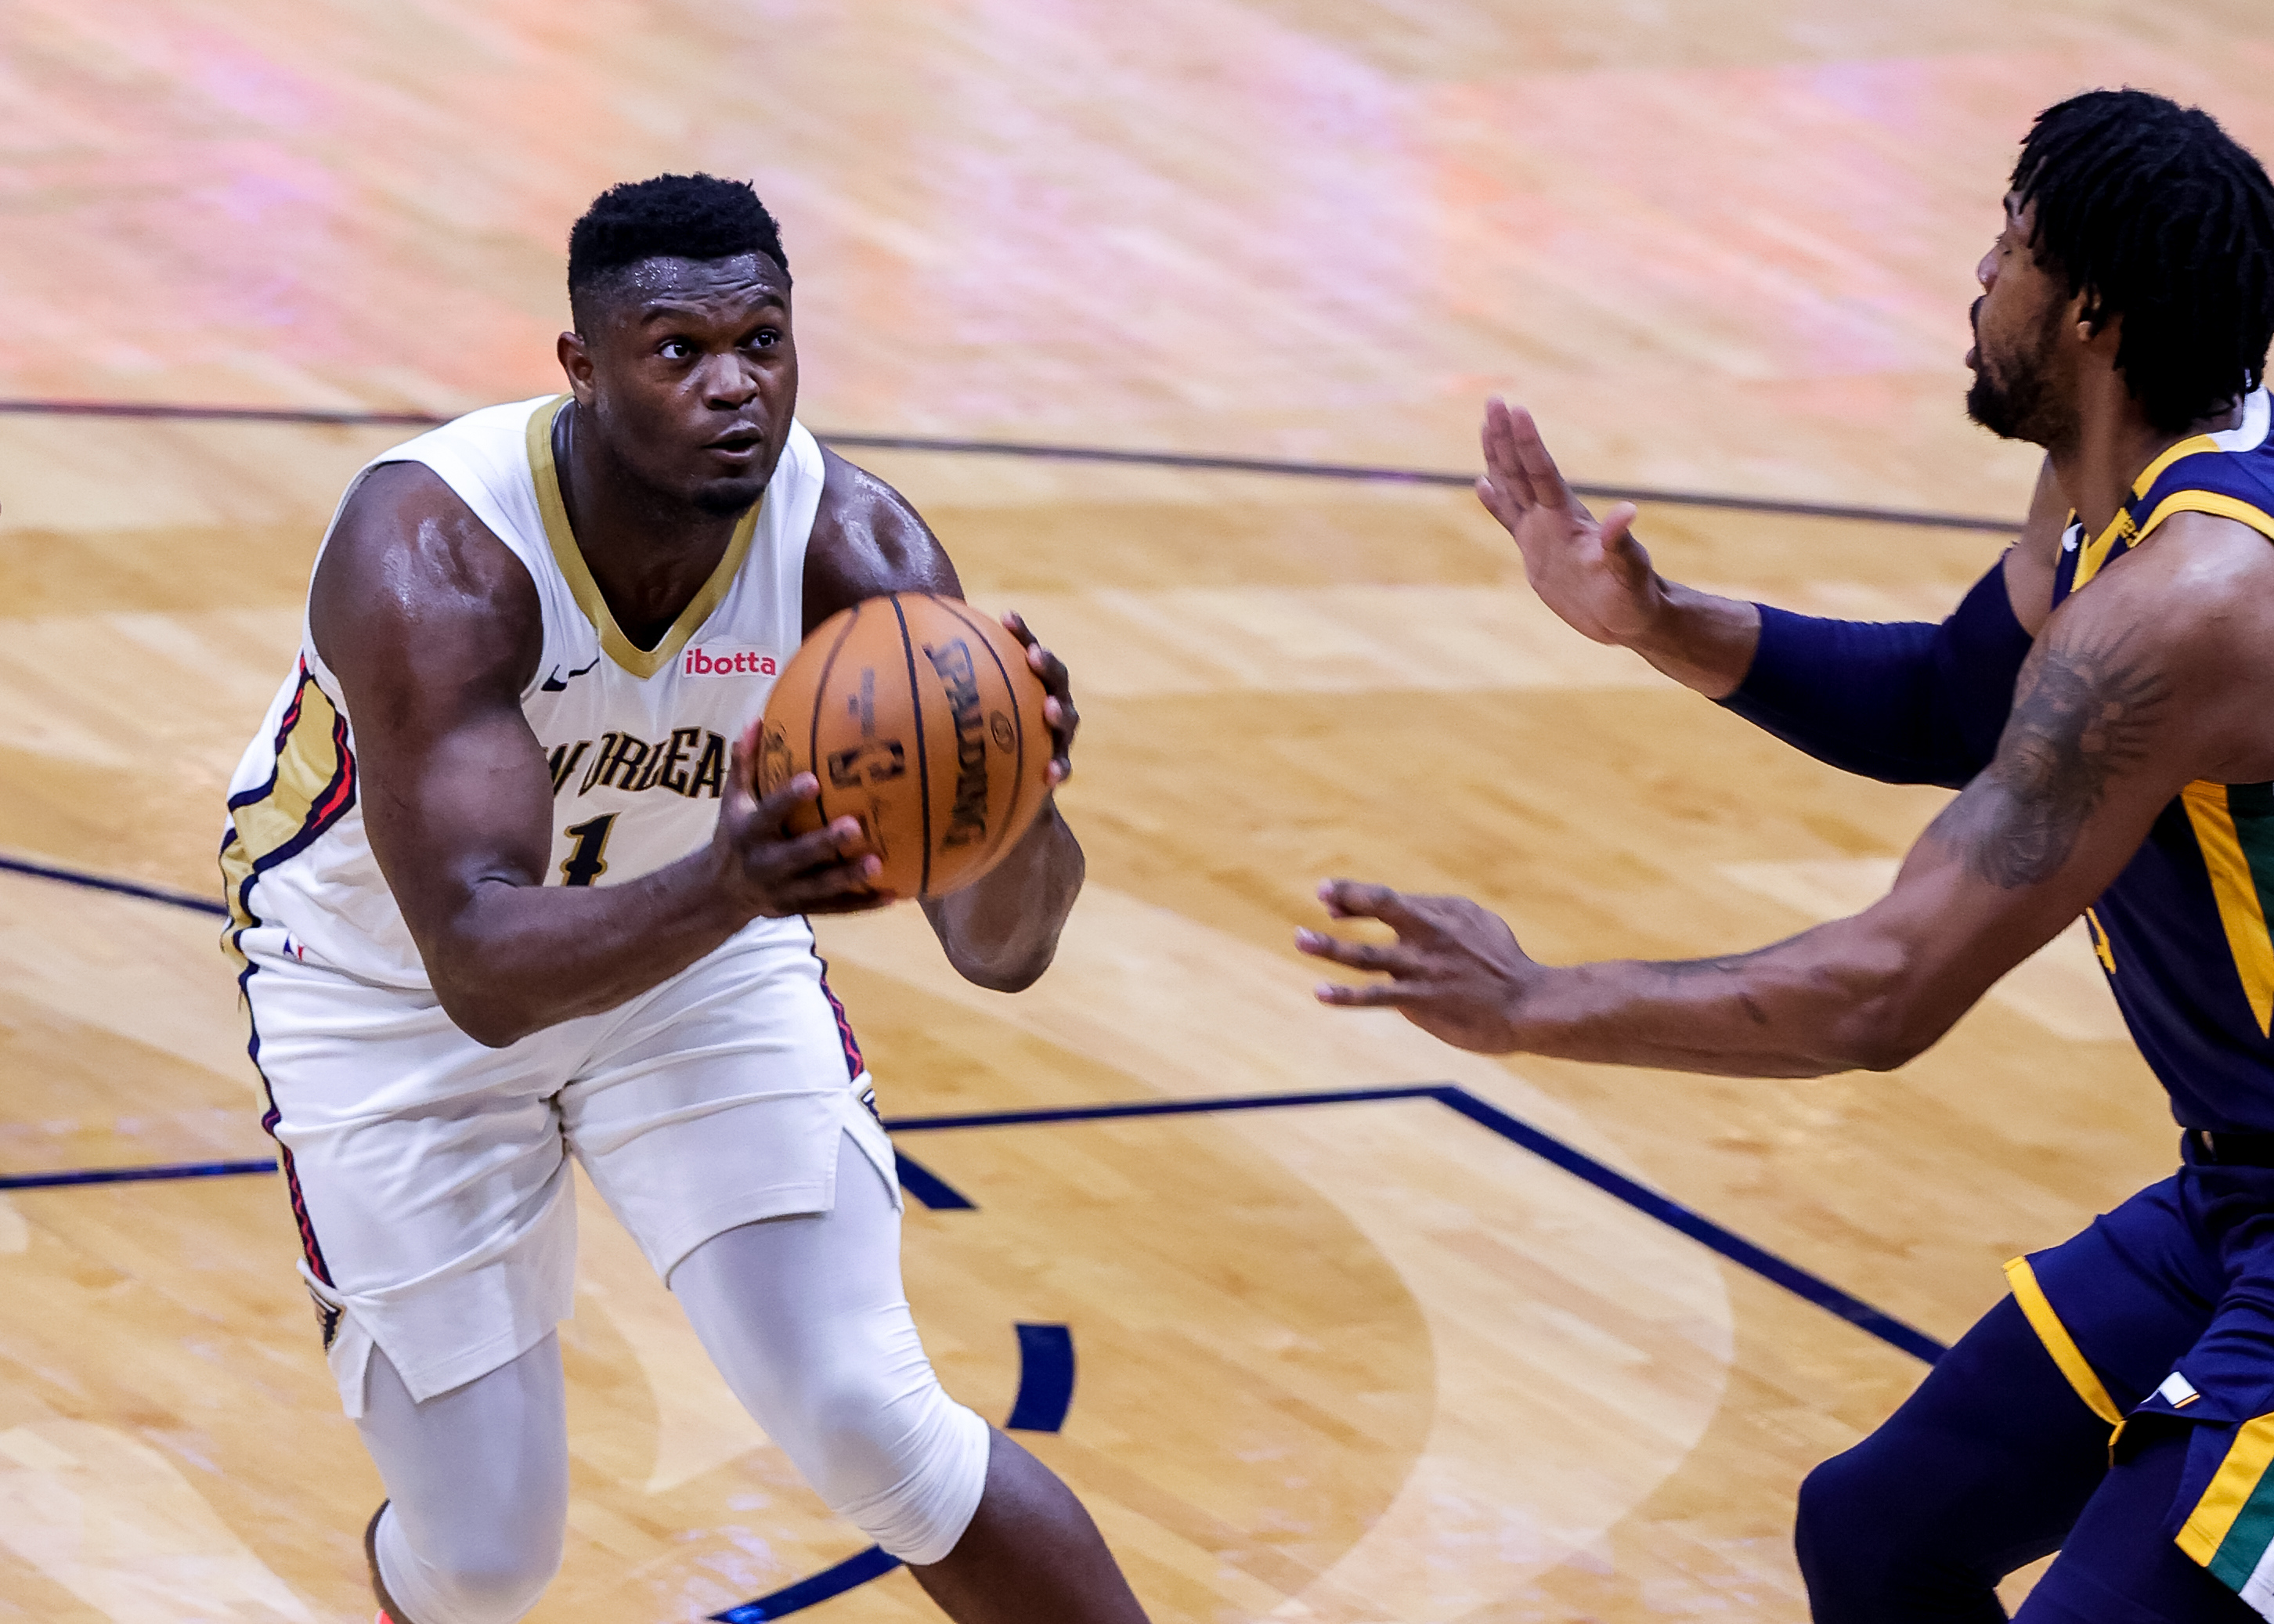 Mar 1, 2021; New Orleans, Louisiana, USA;  New Orleans Pelicans forward Zion Williamson (1) drives to the basket against Utah Jazz center Derrick Favors (right) during the first half at the Smoothie King Center. Mandatory Credit: Stephen Lew-USA TODAY Sports